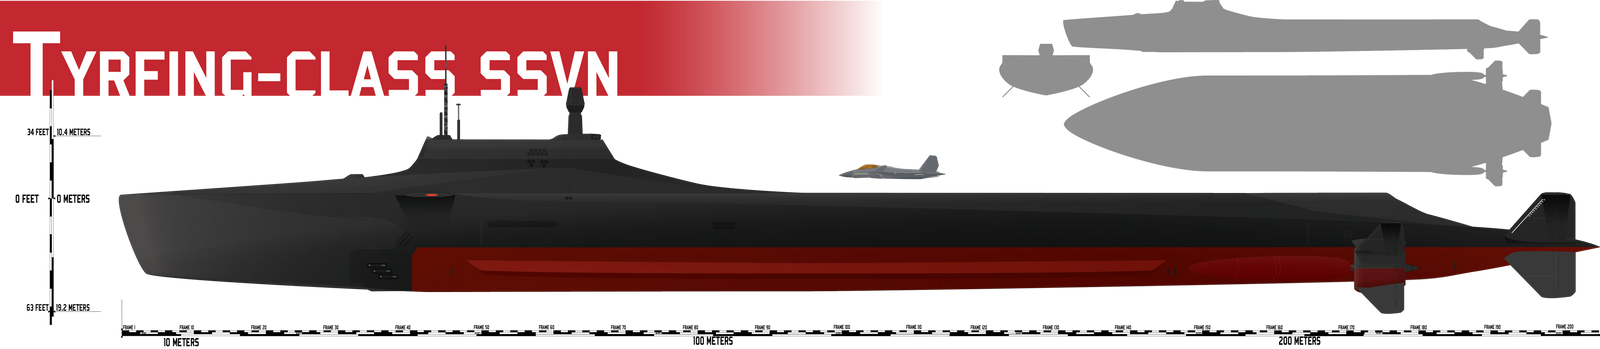 Rufetic Federation Armed Forces Tyrfing_class_ssvn_submersible_strike_carrier_by_afterskies-d8koxba